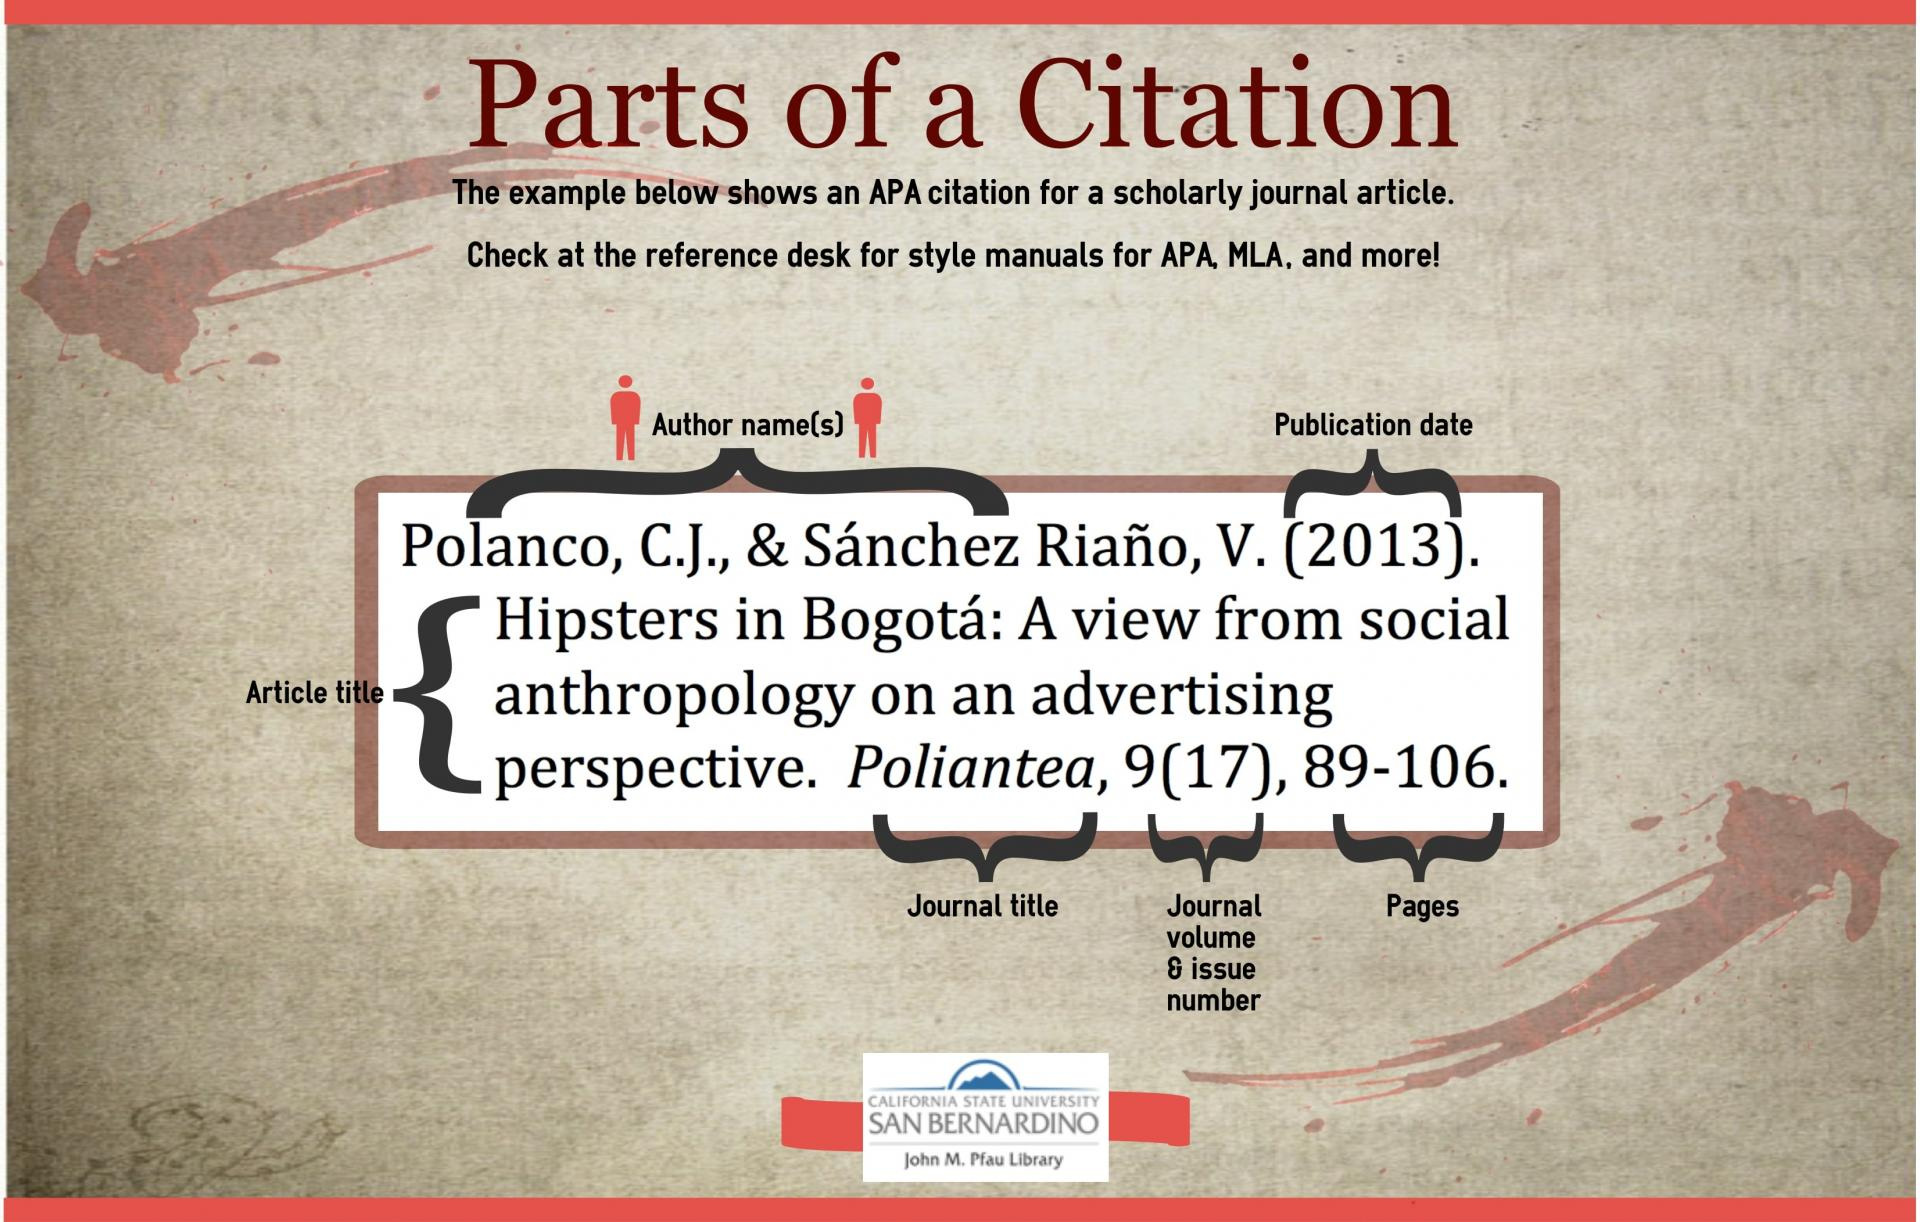 Parts of a Citation